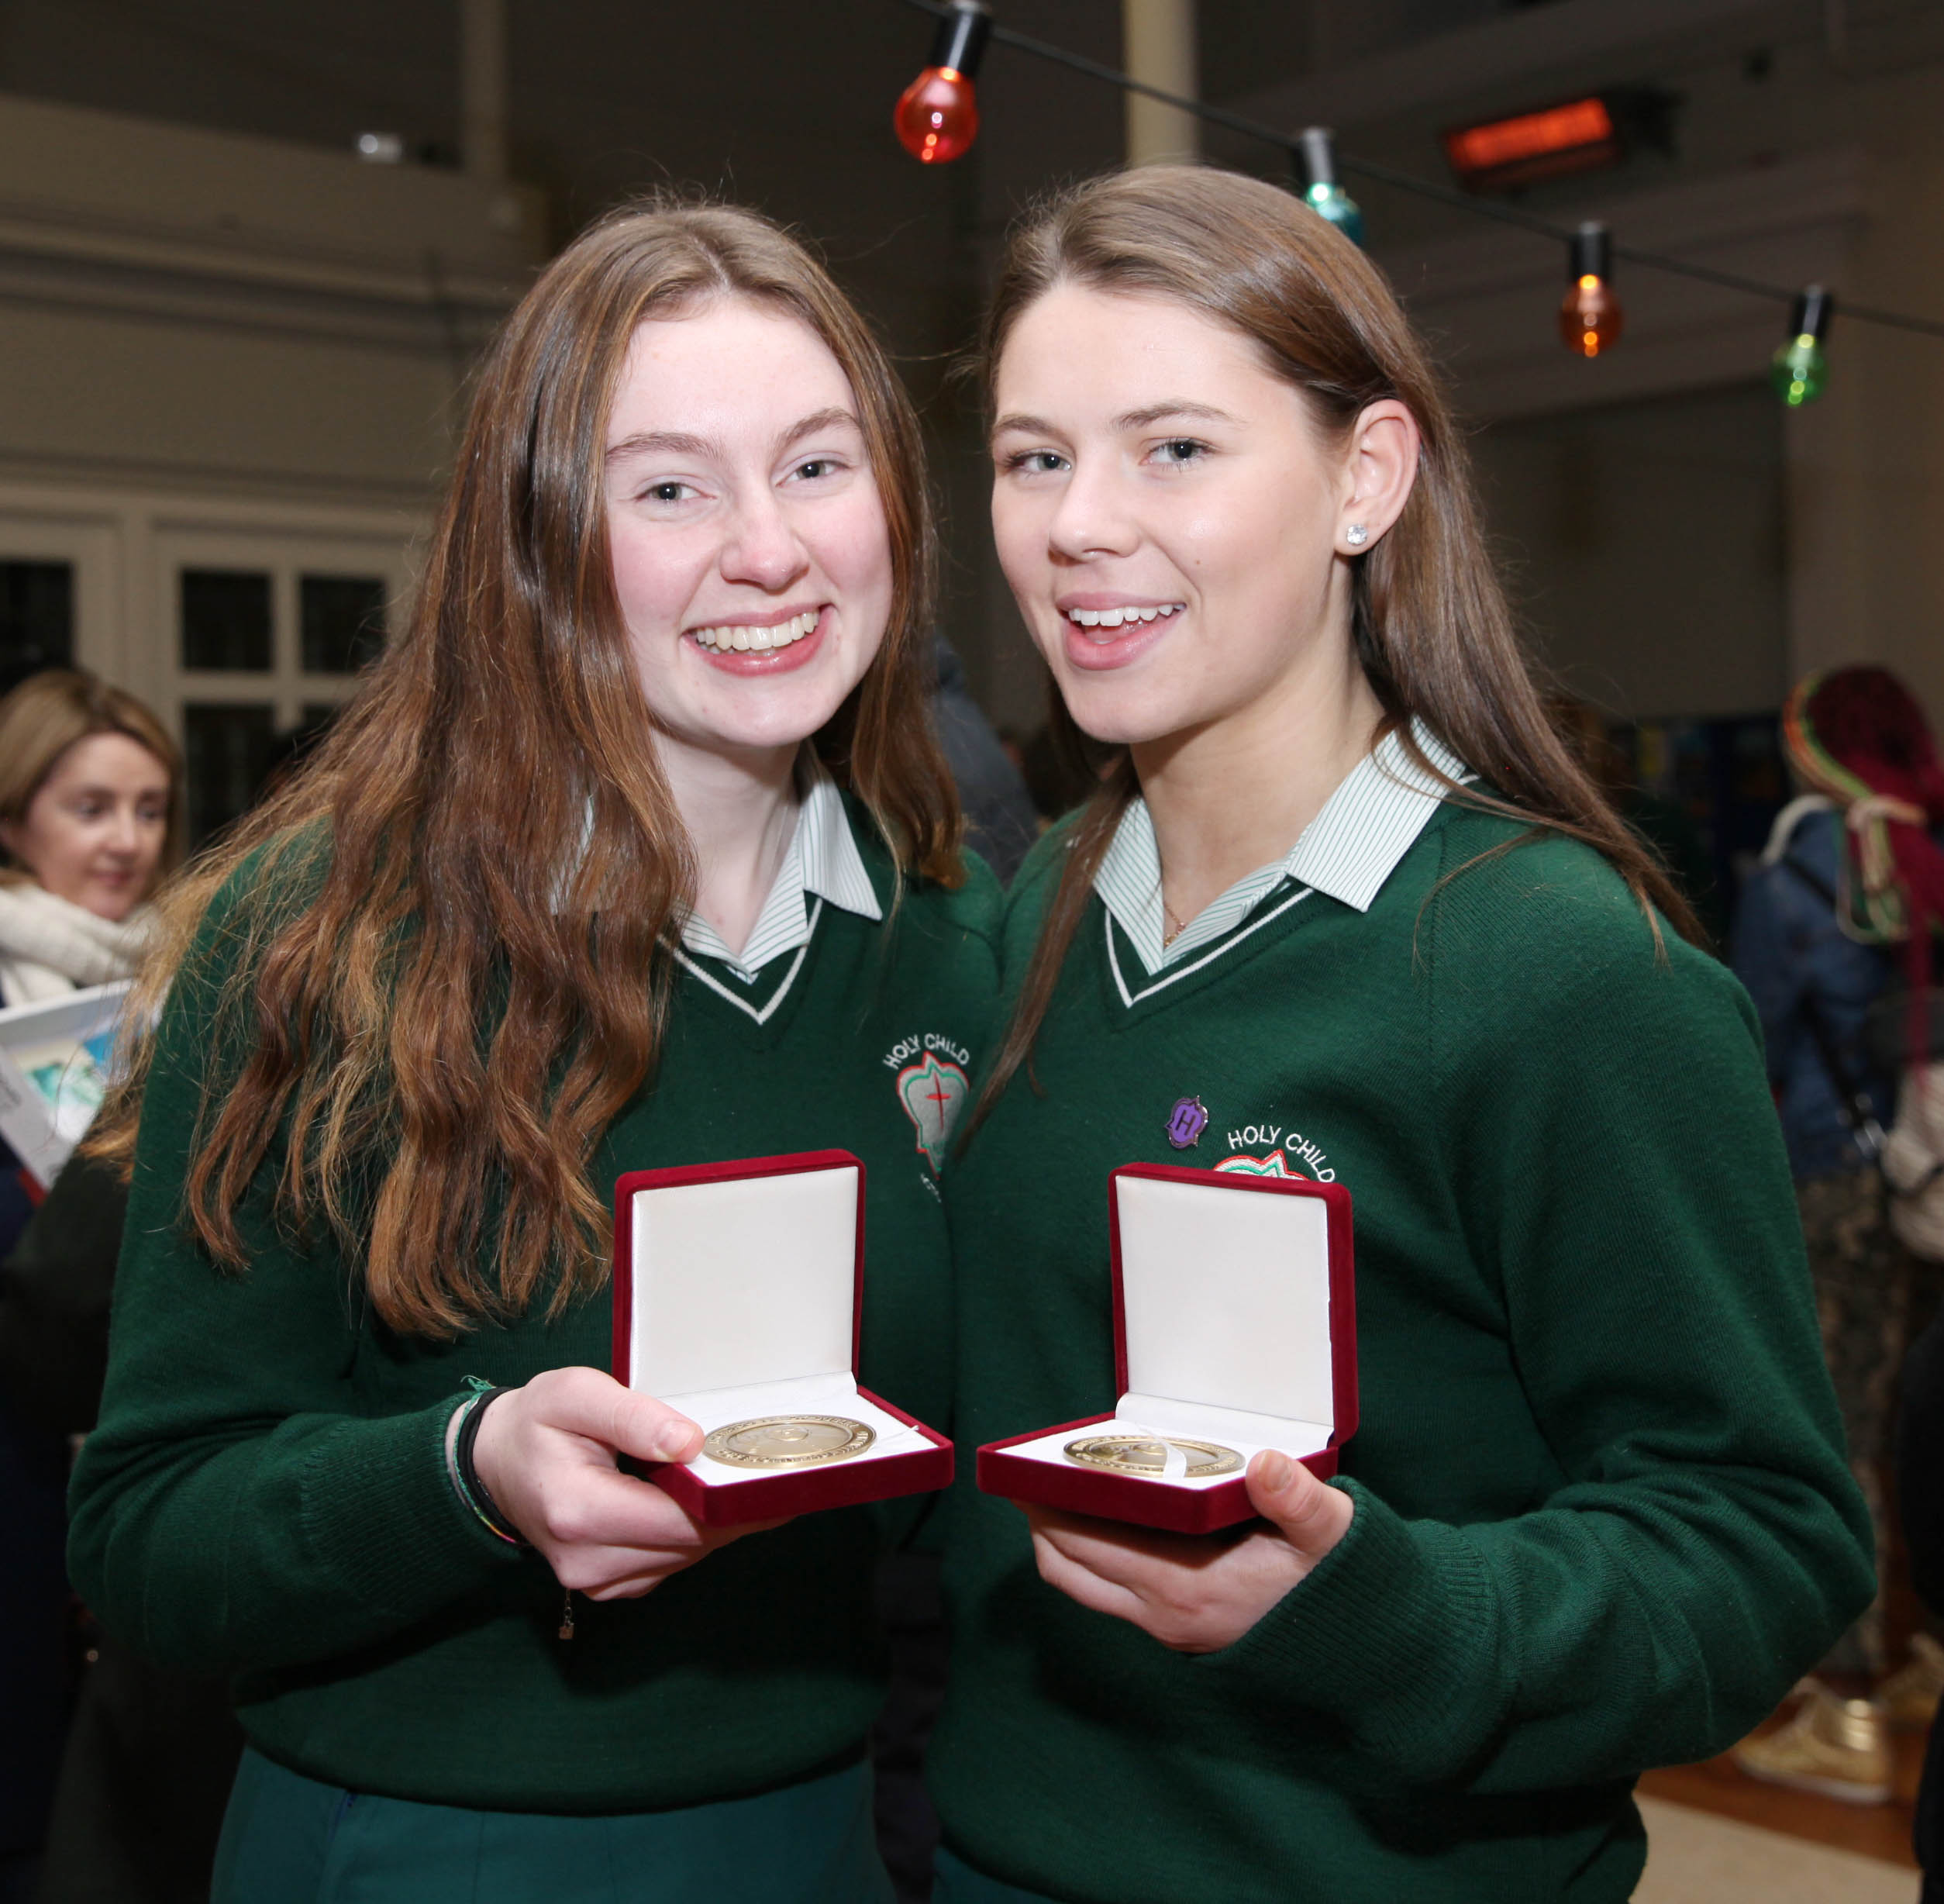 JOHN PAUL 2nd AWARDS. 4.2.2020On Tuesday evening the Archdiocese of Dublin held the annual St John Paul II awards in St Paul's Church Arran Quay in Dublin. The awards are dedicated to the memory of St. John Paul II who showed a great love and confidence in young people. Christian leadership and service in the community are at the heart of what the awards are about. Pic shows award winners Anna Sheridan and Kaci Rock from Holy Child school Killiney on Tuesday evening in St Paul's Church Arran Quay in Dublin. Pic John Mc Elroy. NO REPRO FEE.